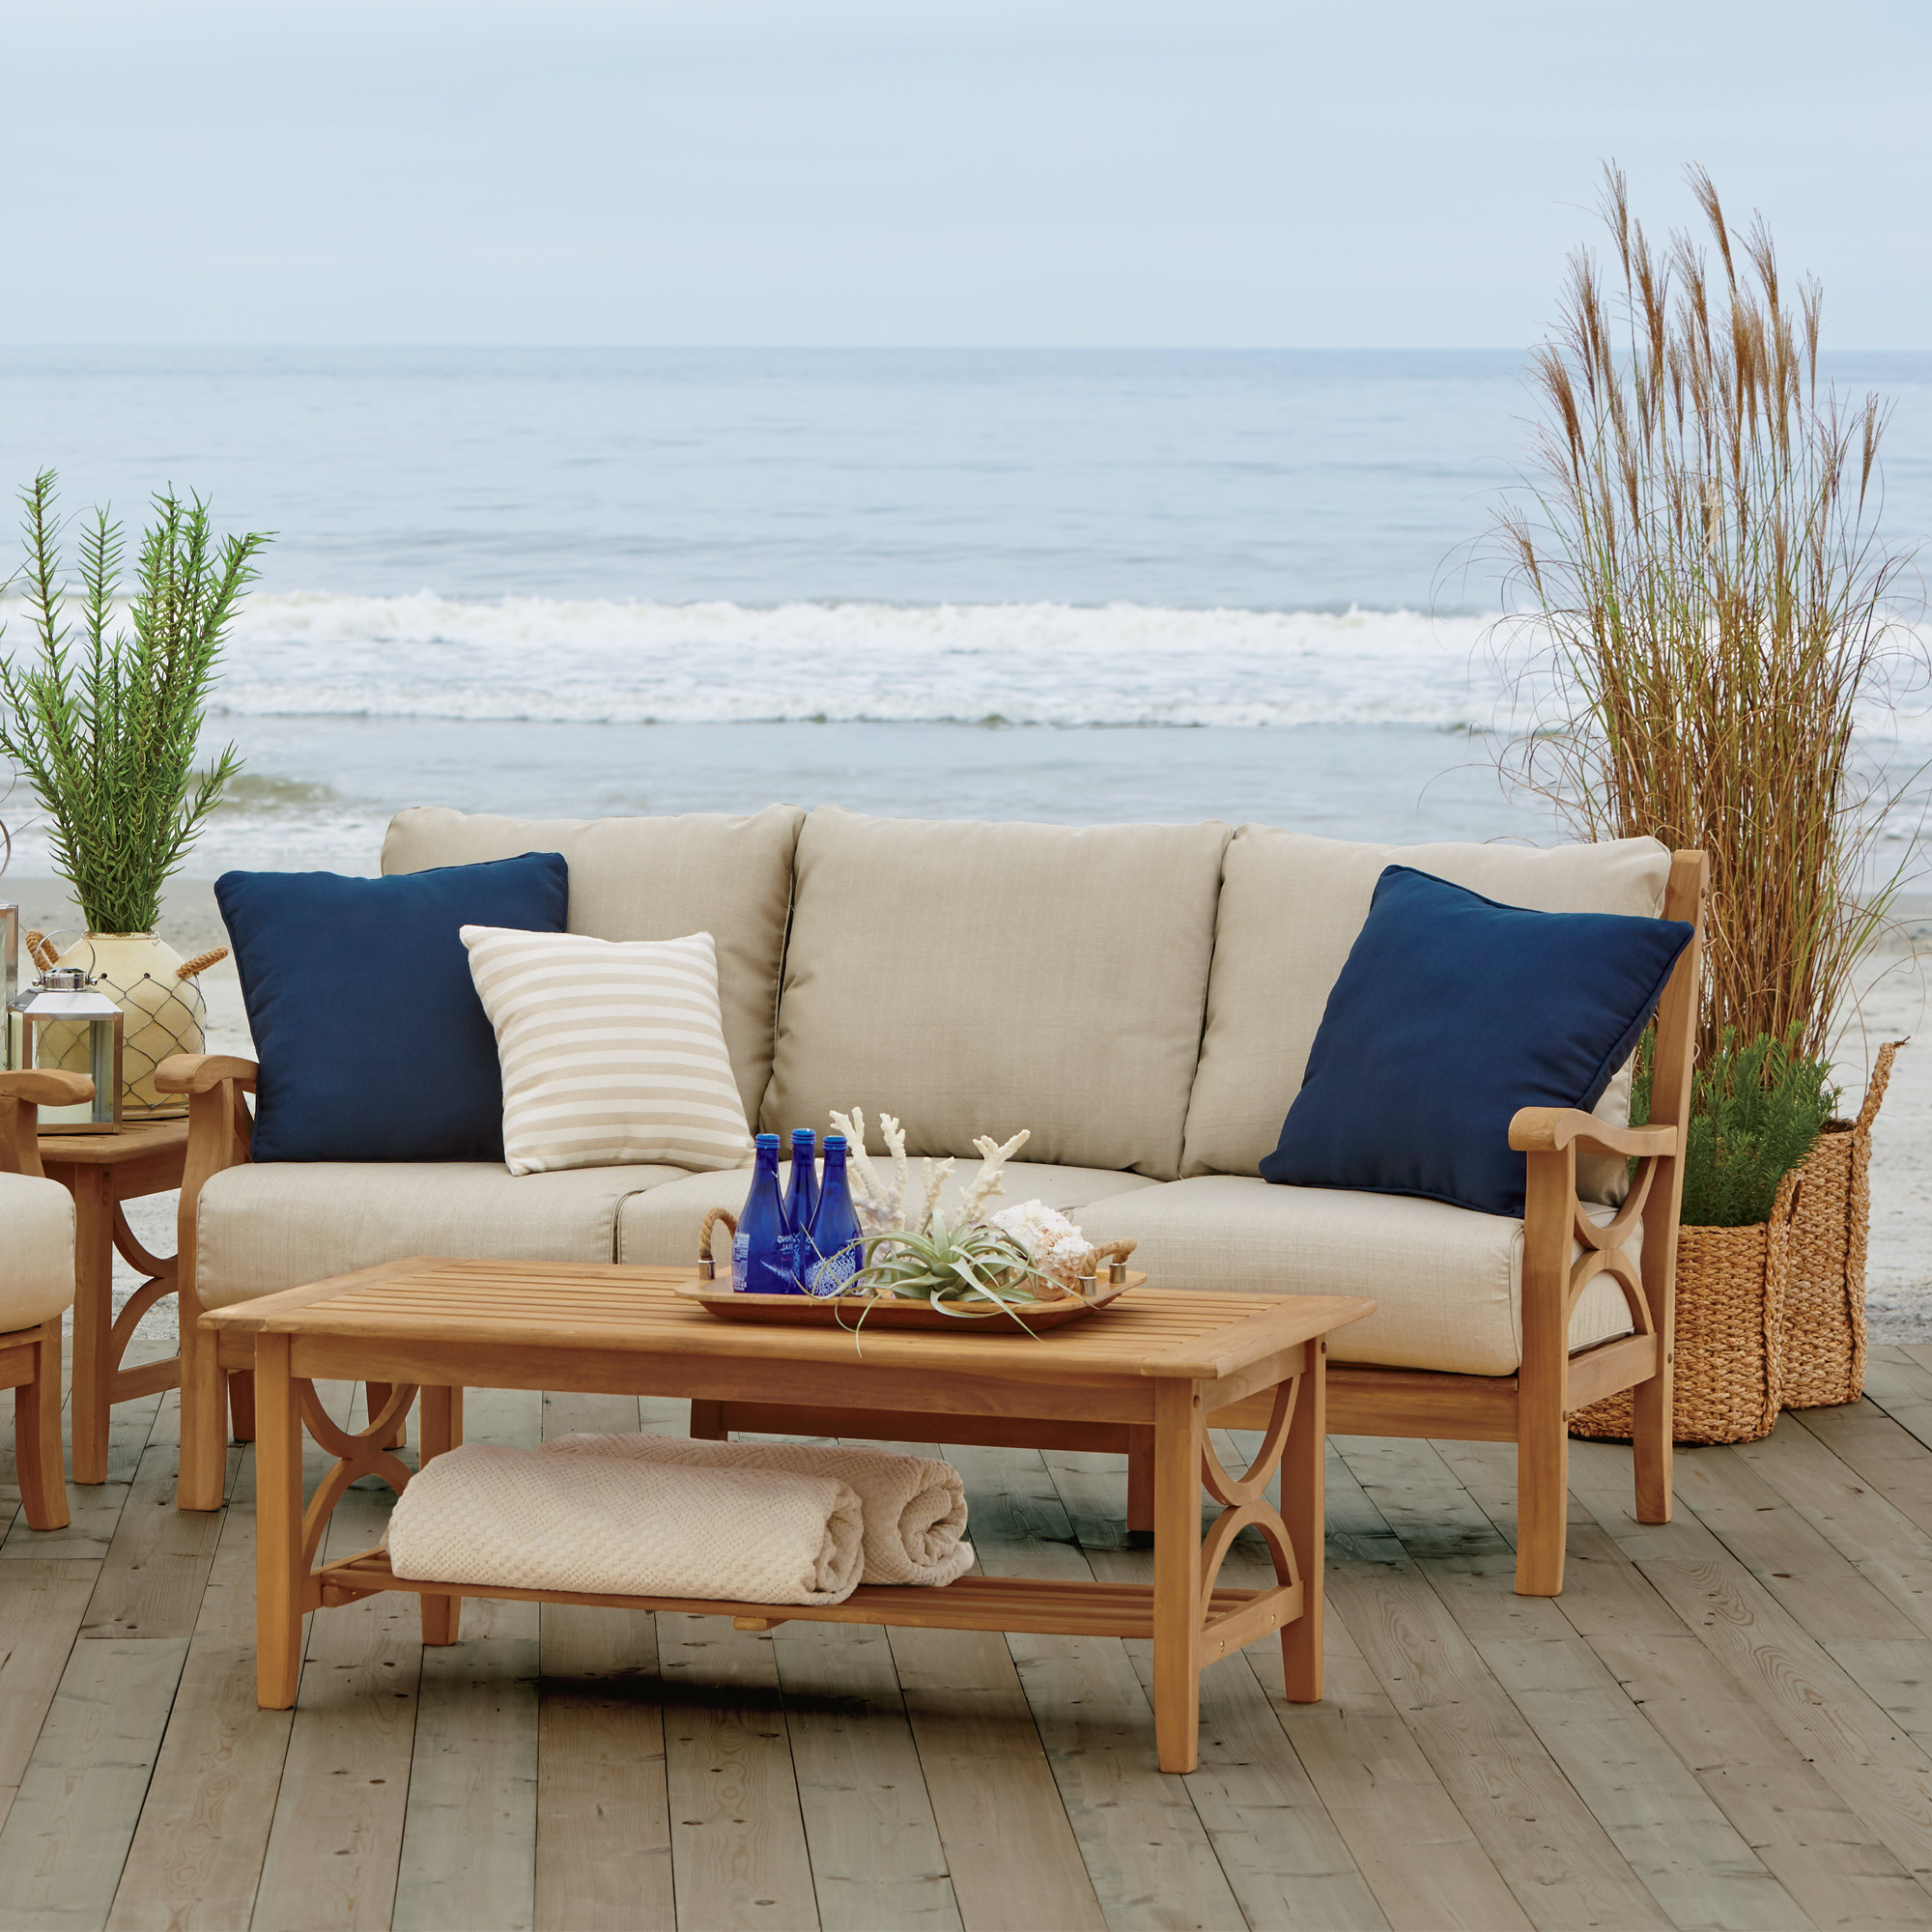 Antonia Teak Patio Sectionals With Cushions With Regard To Favorite Brunswick Teak Patio Sofa With Cushions (View 8 of 25)